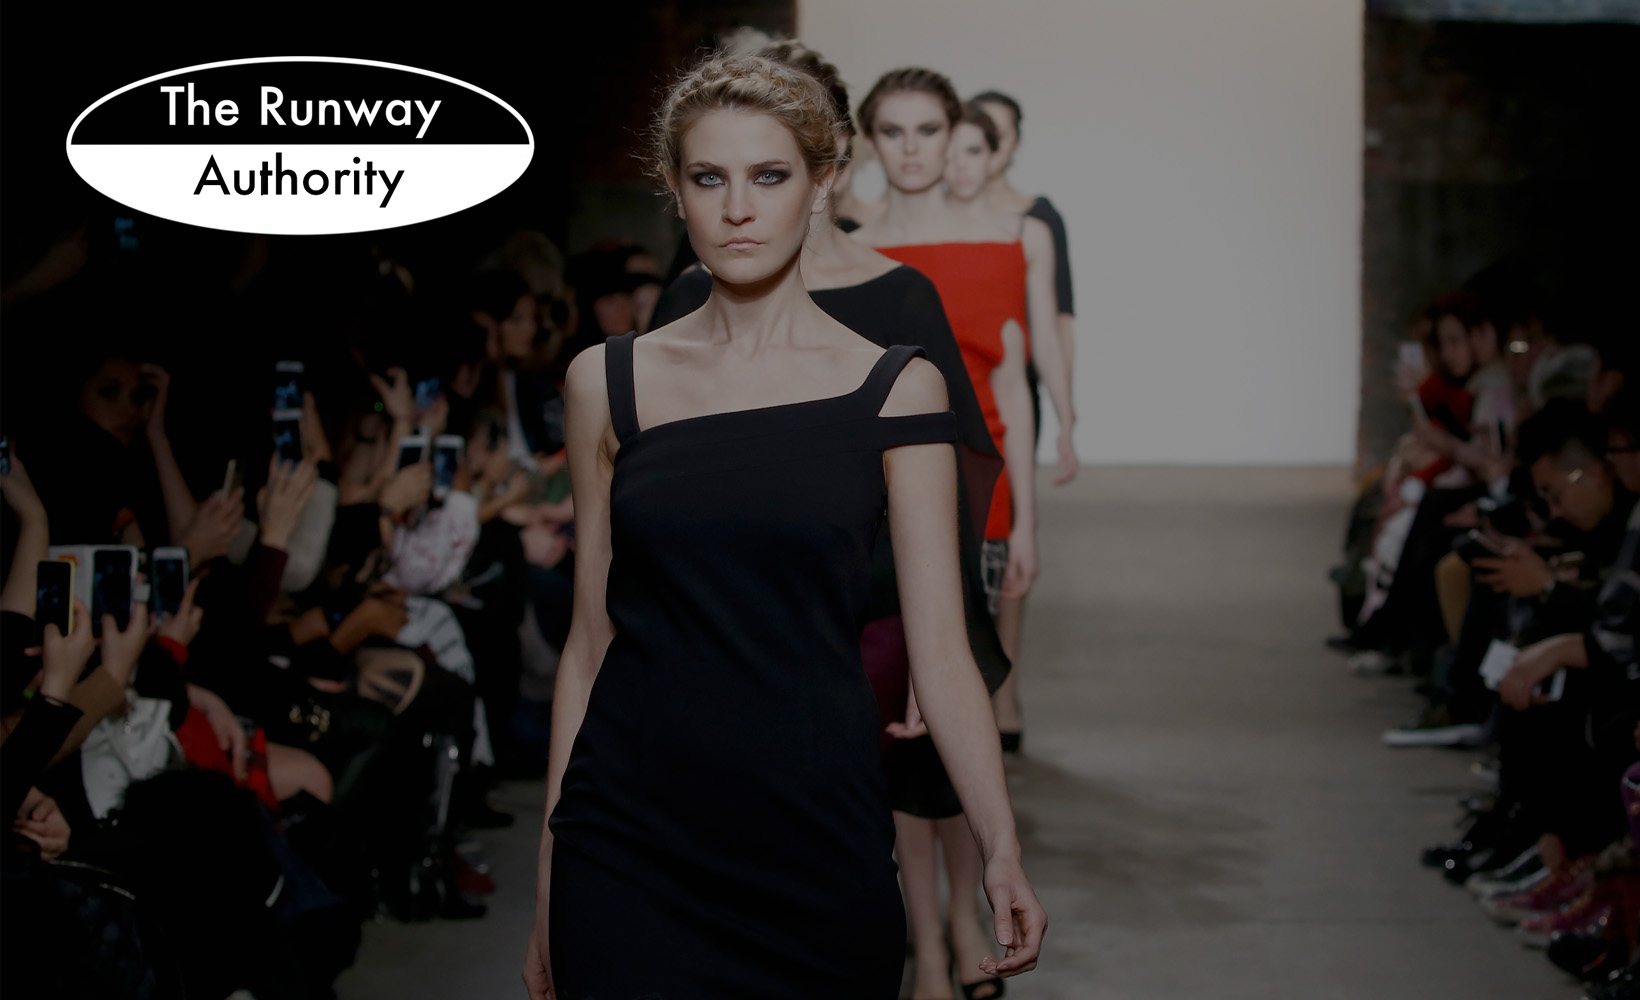 063342a68401 The Runway Authority will return to the Nolcha Shows as an Official Media  Partner for the third consecutive season as they continue to support  independent ...